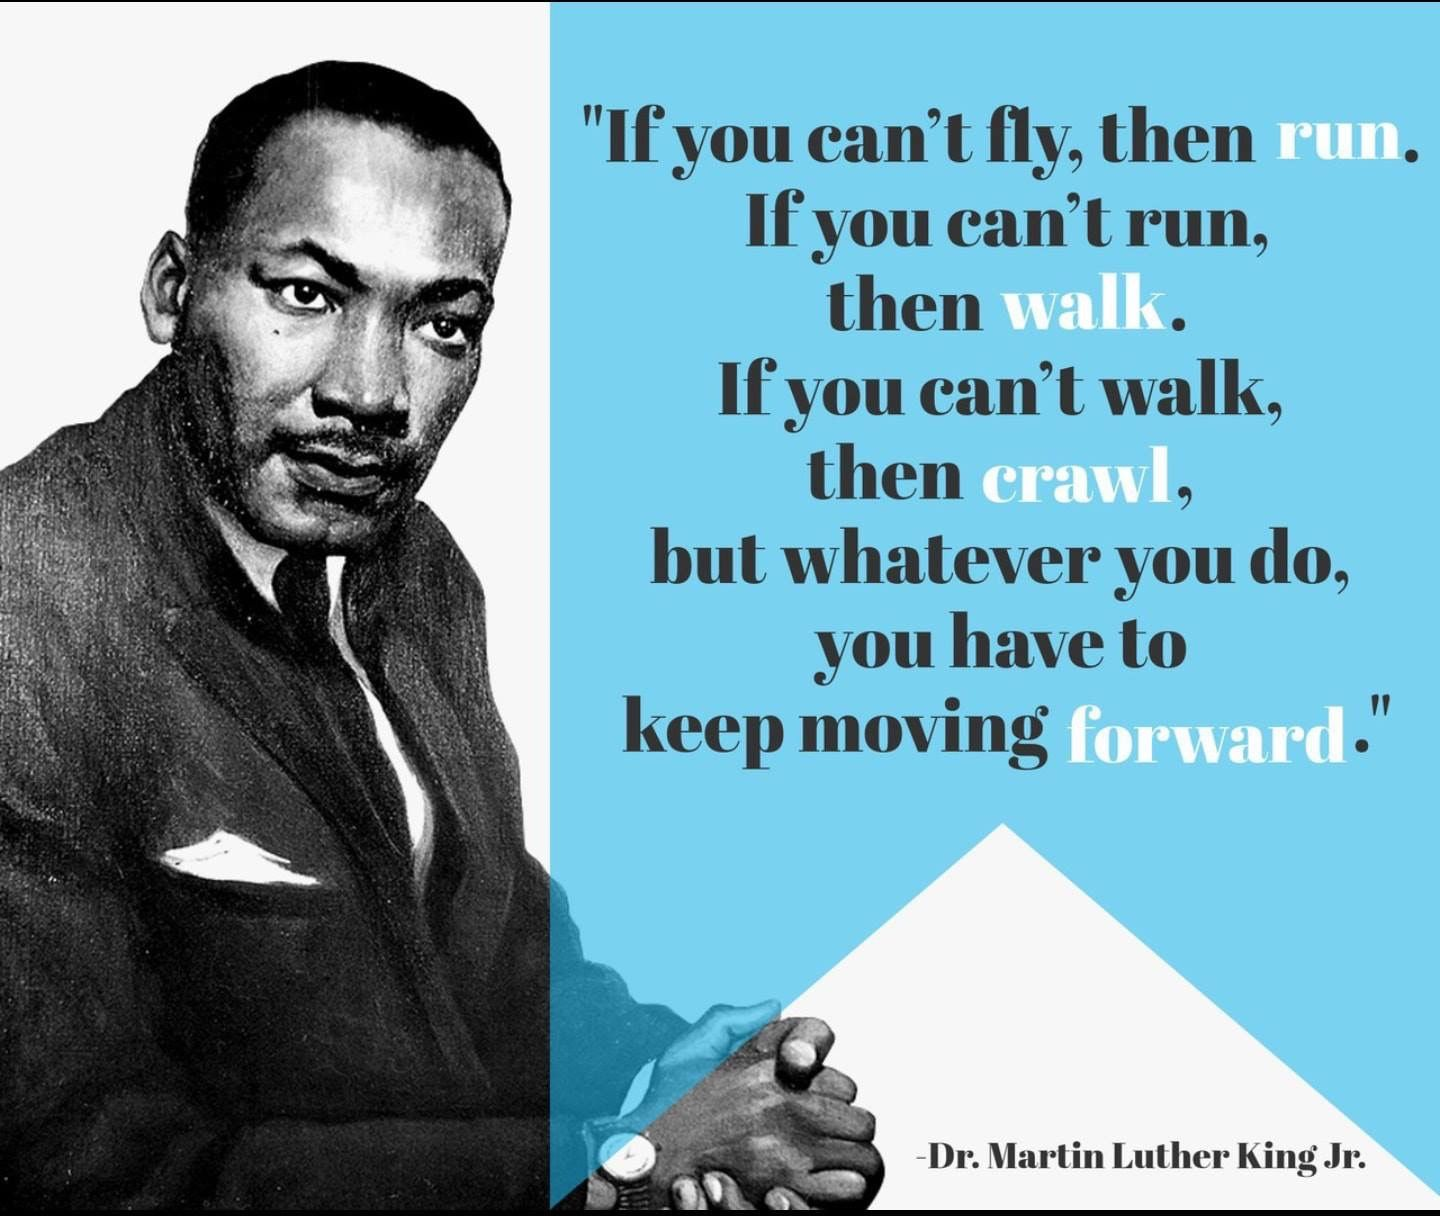 Pin by Laura Pennell Lutz on MLK Day in 2020 | Leadership ...